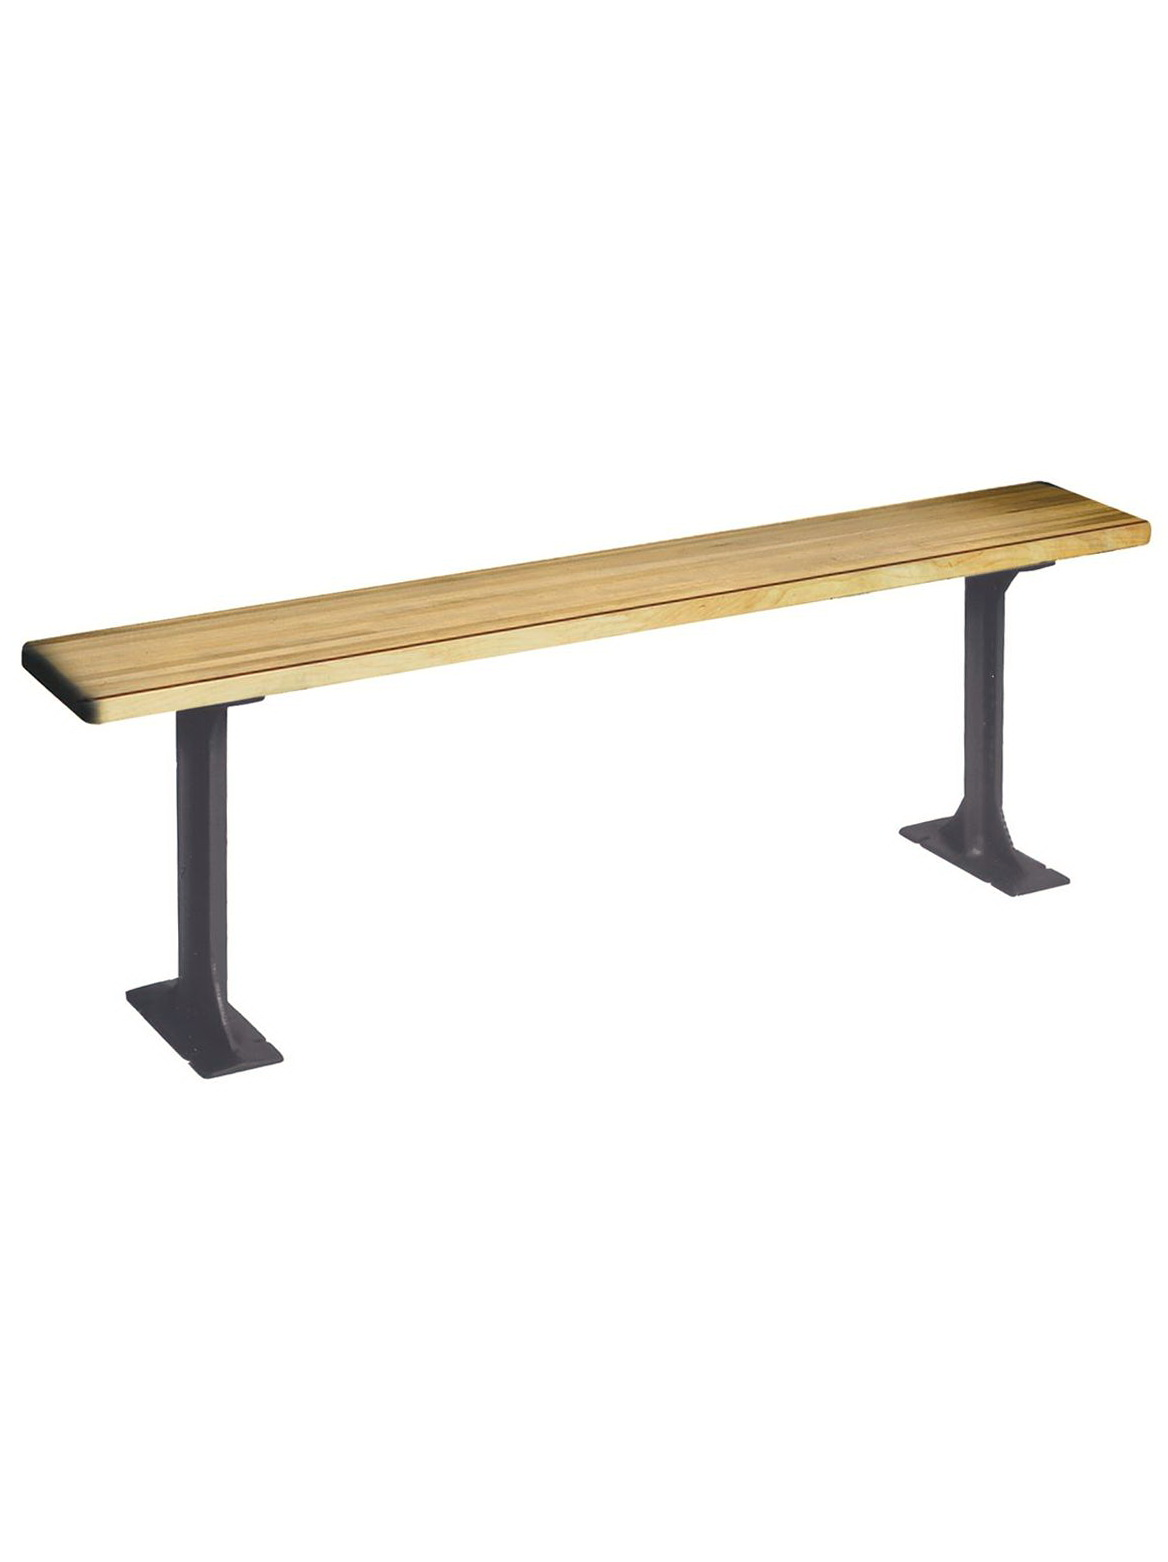 Locker Room Benches Free Standing